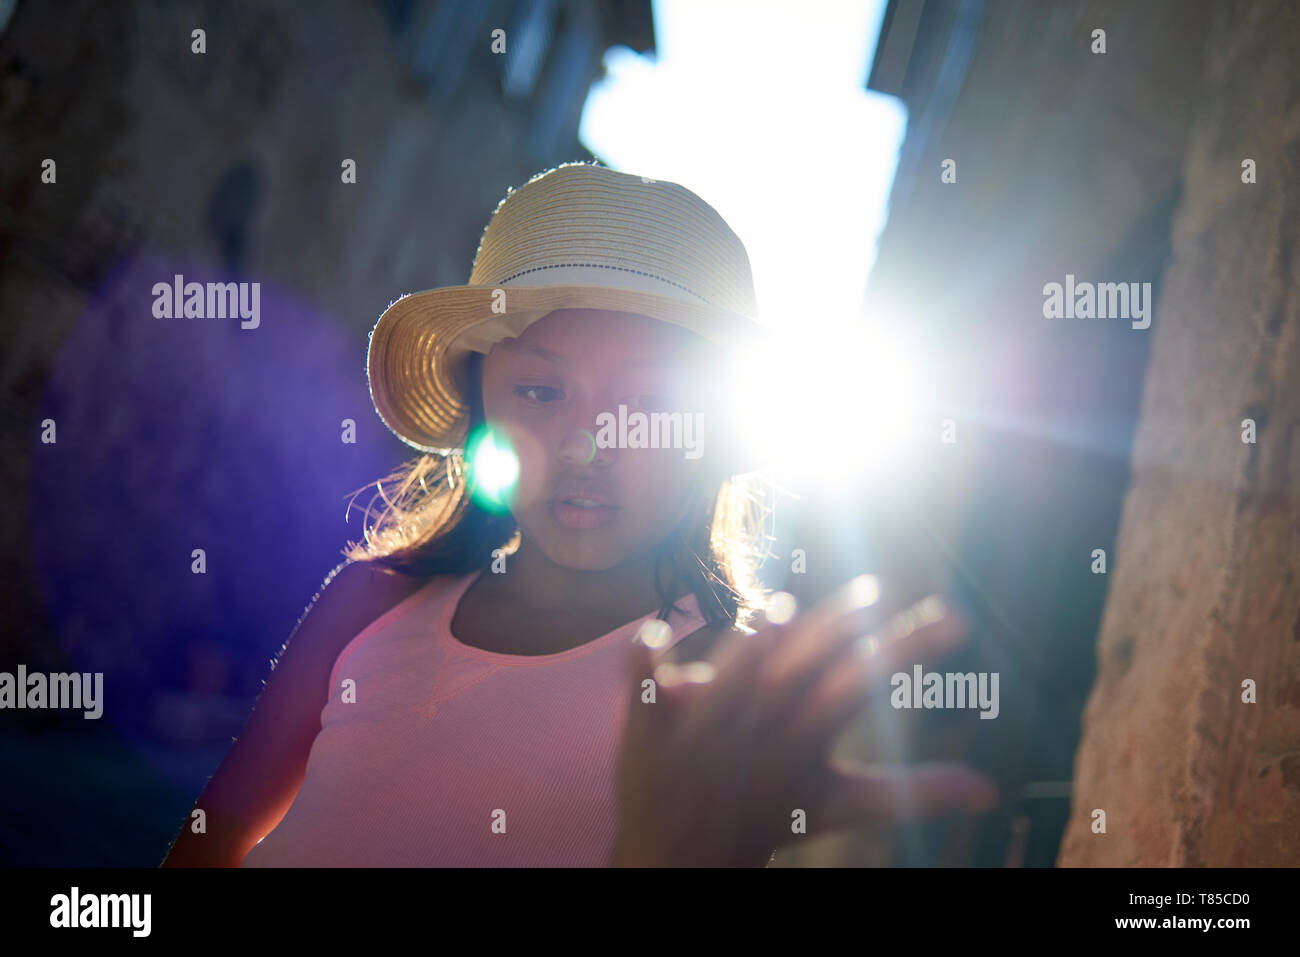 Mystical image of a cute preteen Asian girl wearing a straw hat in the streets of Siena in Toscany catching a beam of sunlight on her hand - Stock Image